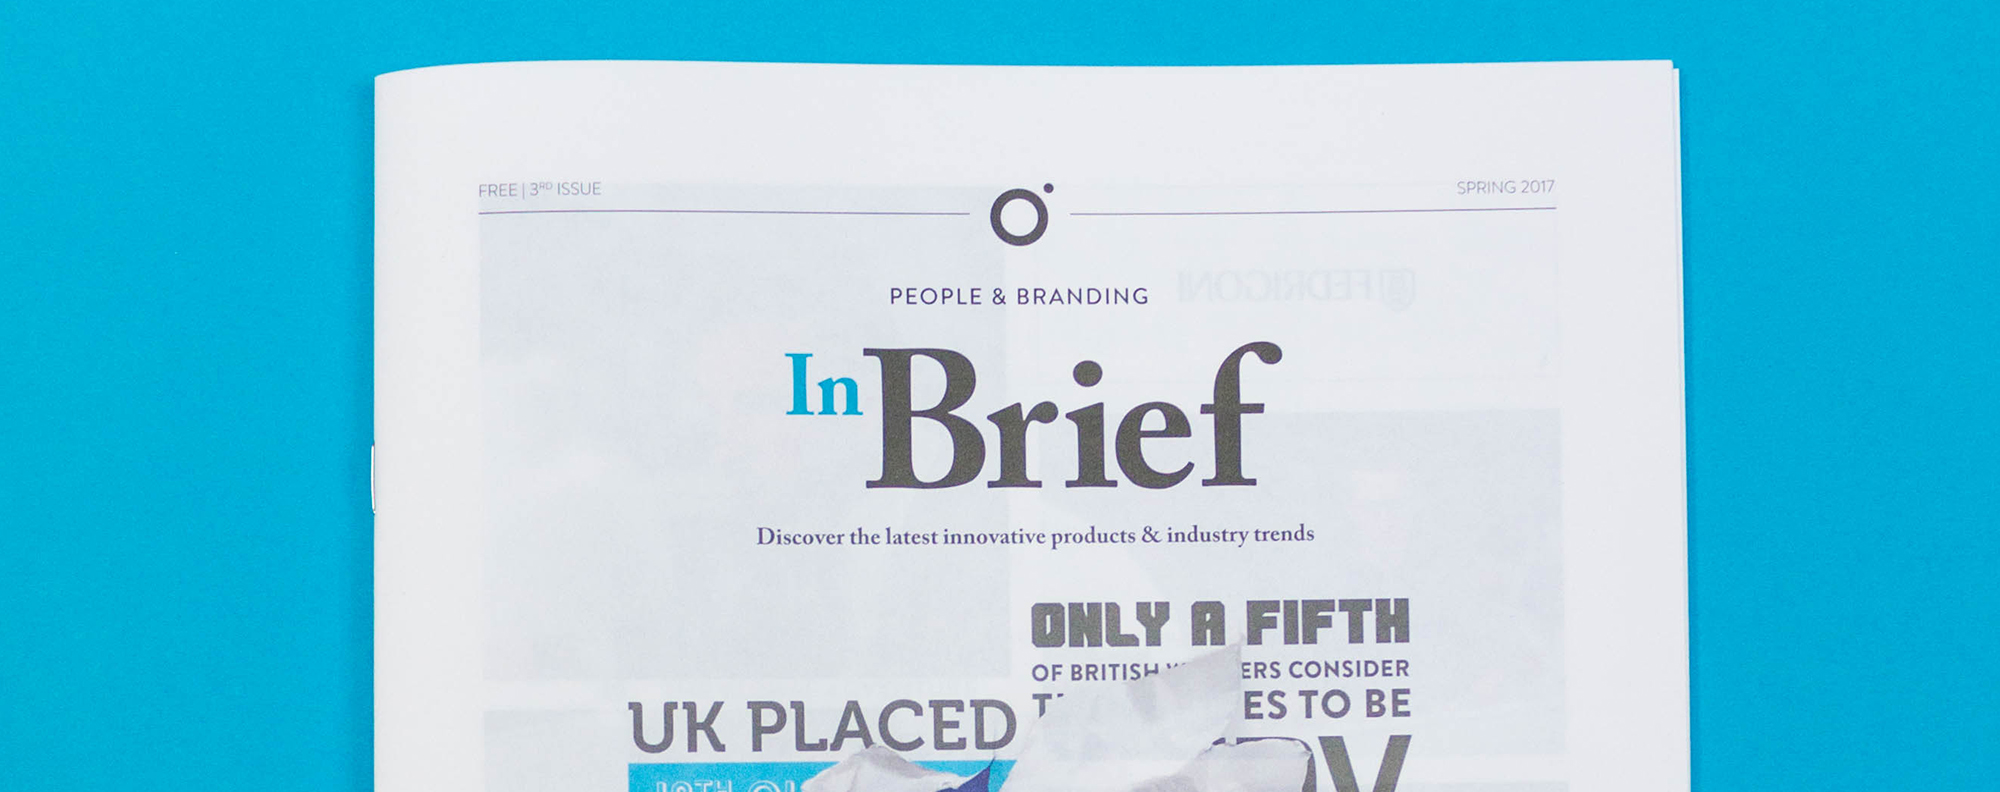 InBrief Issue 3: People & Branding